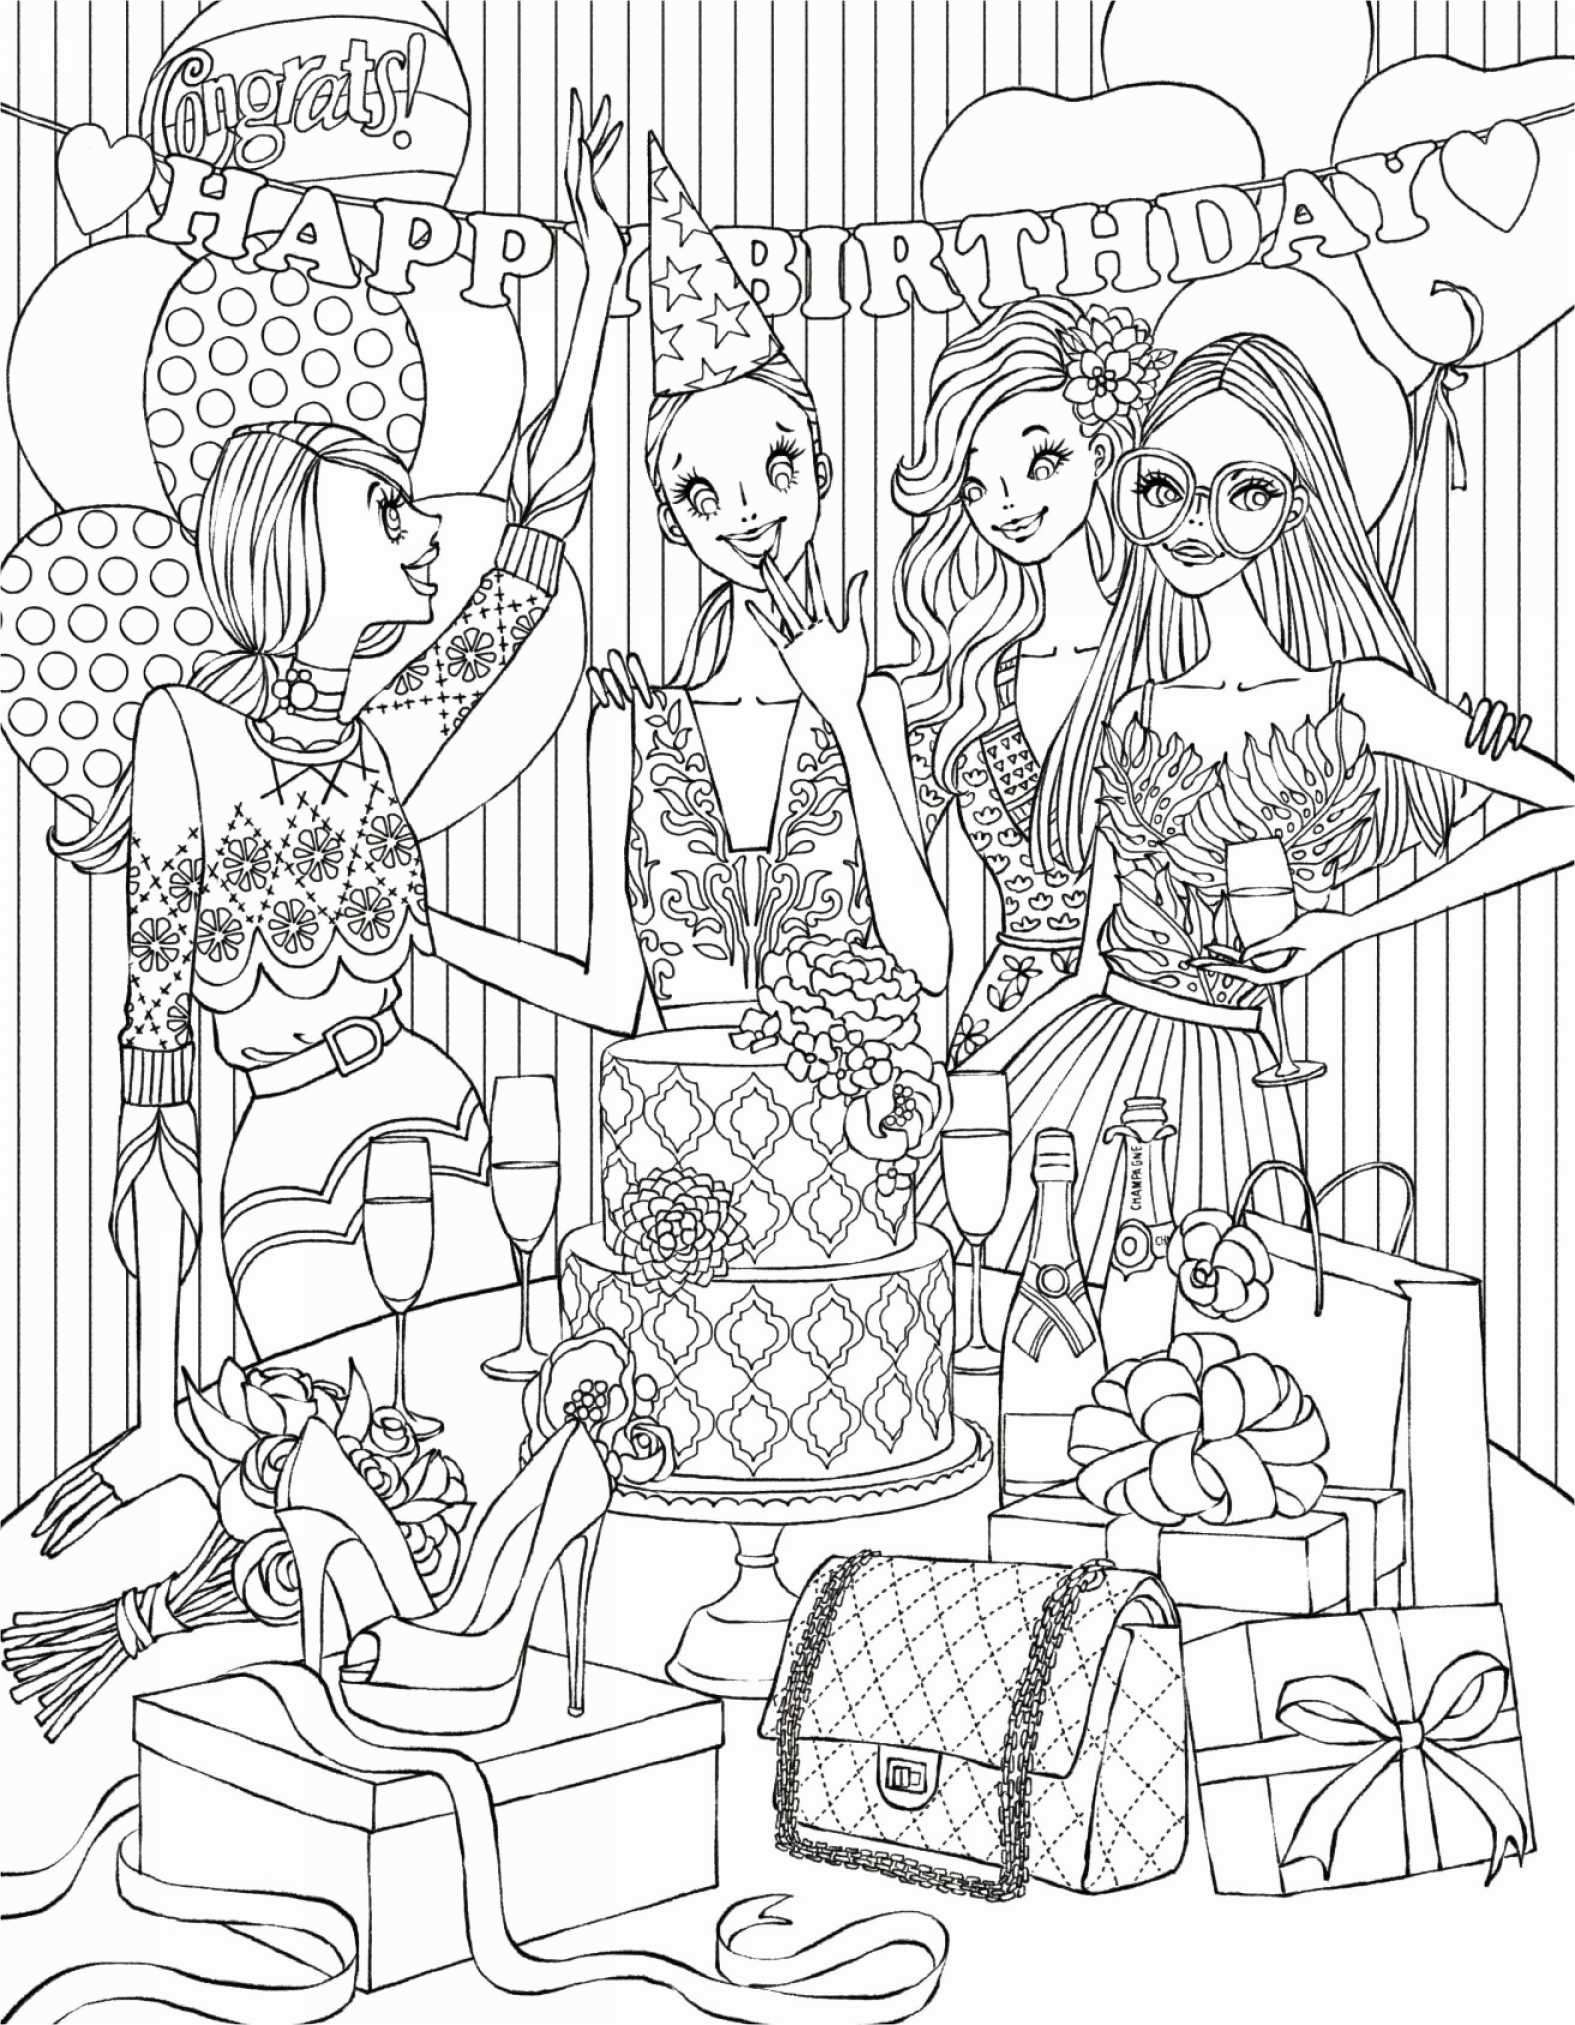 Christmas Coloring Pages For Grade 1 With Adding And Subtracting